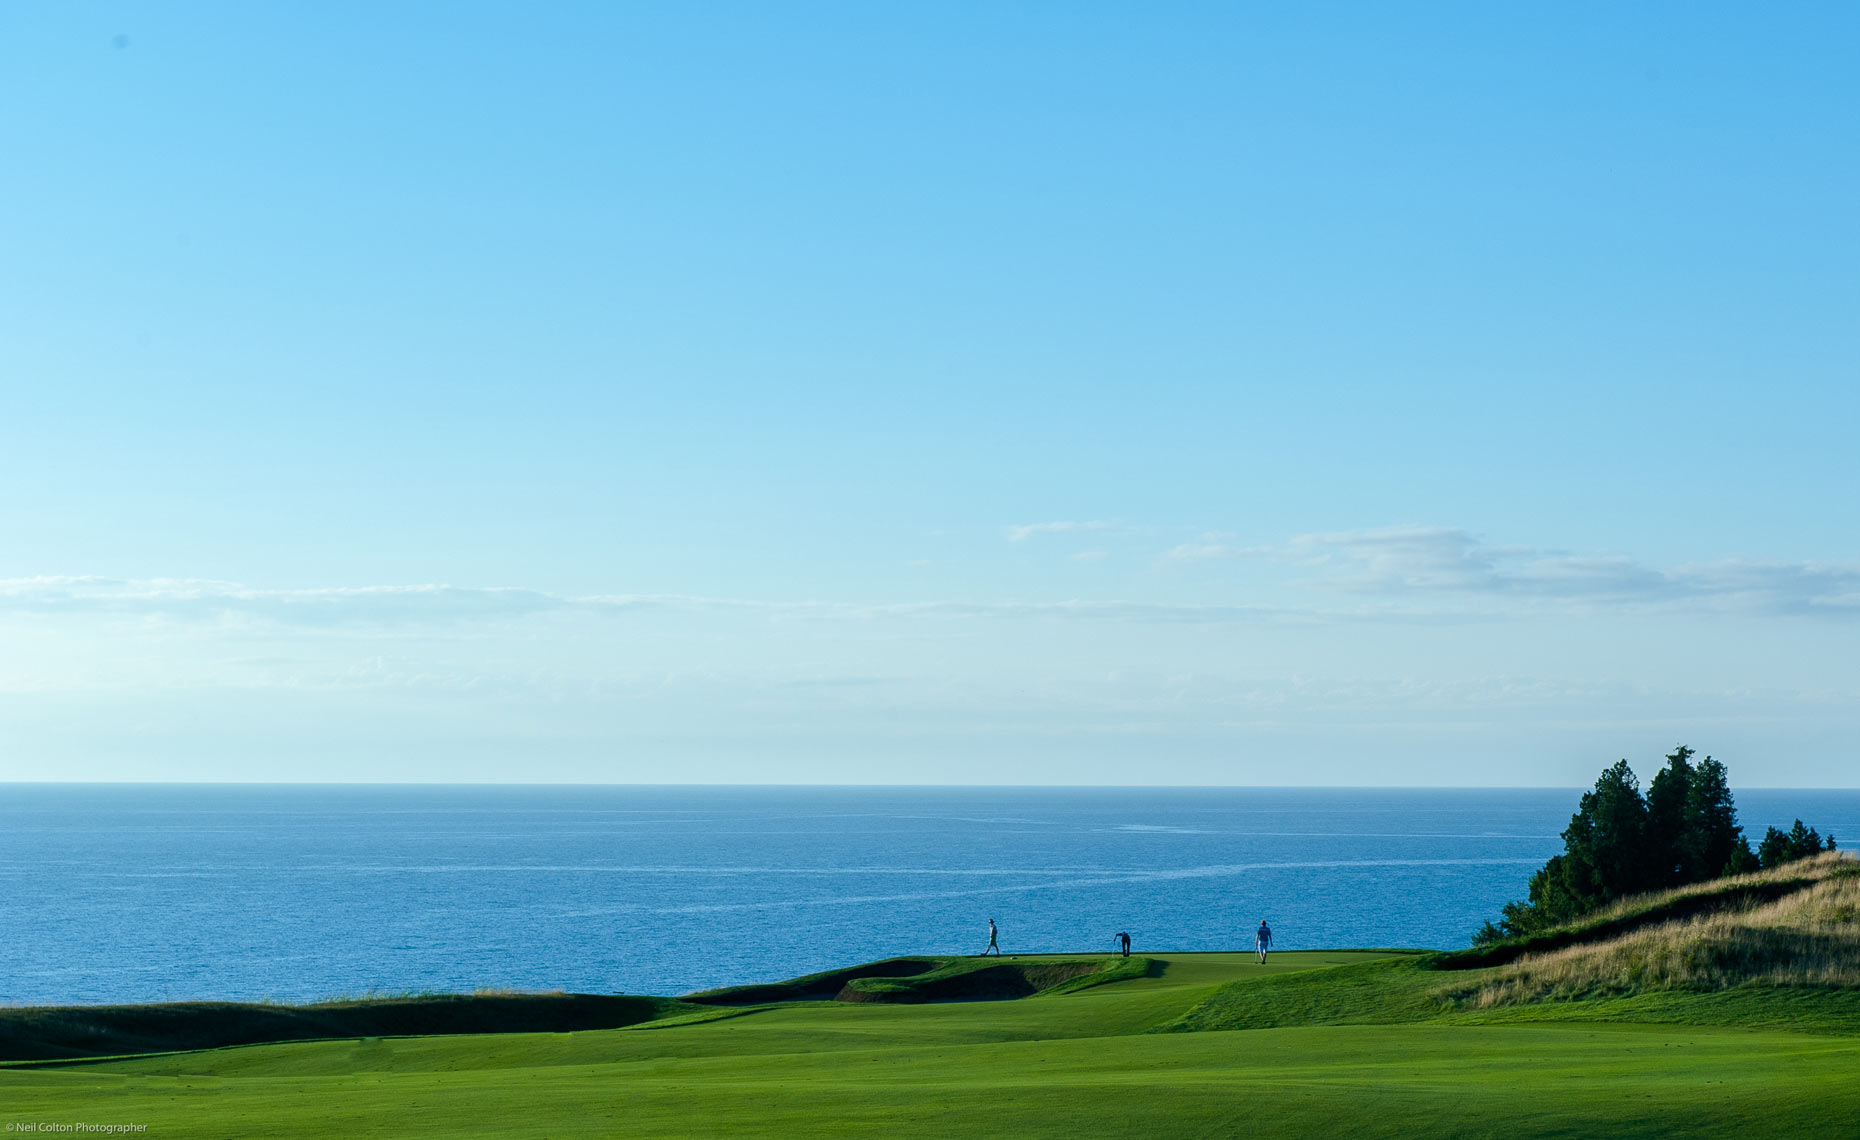 Neil-Colton-lifestyle-photographre-arcadia-bluffs-gc-6